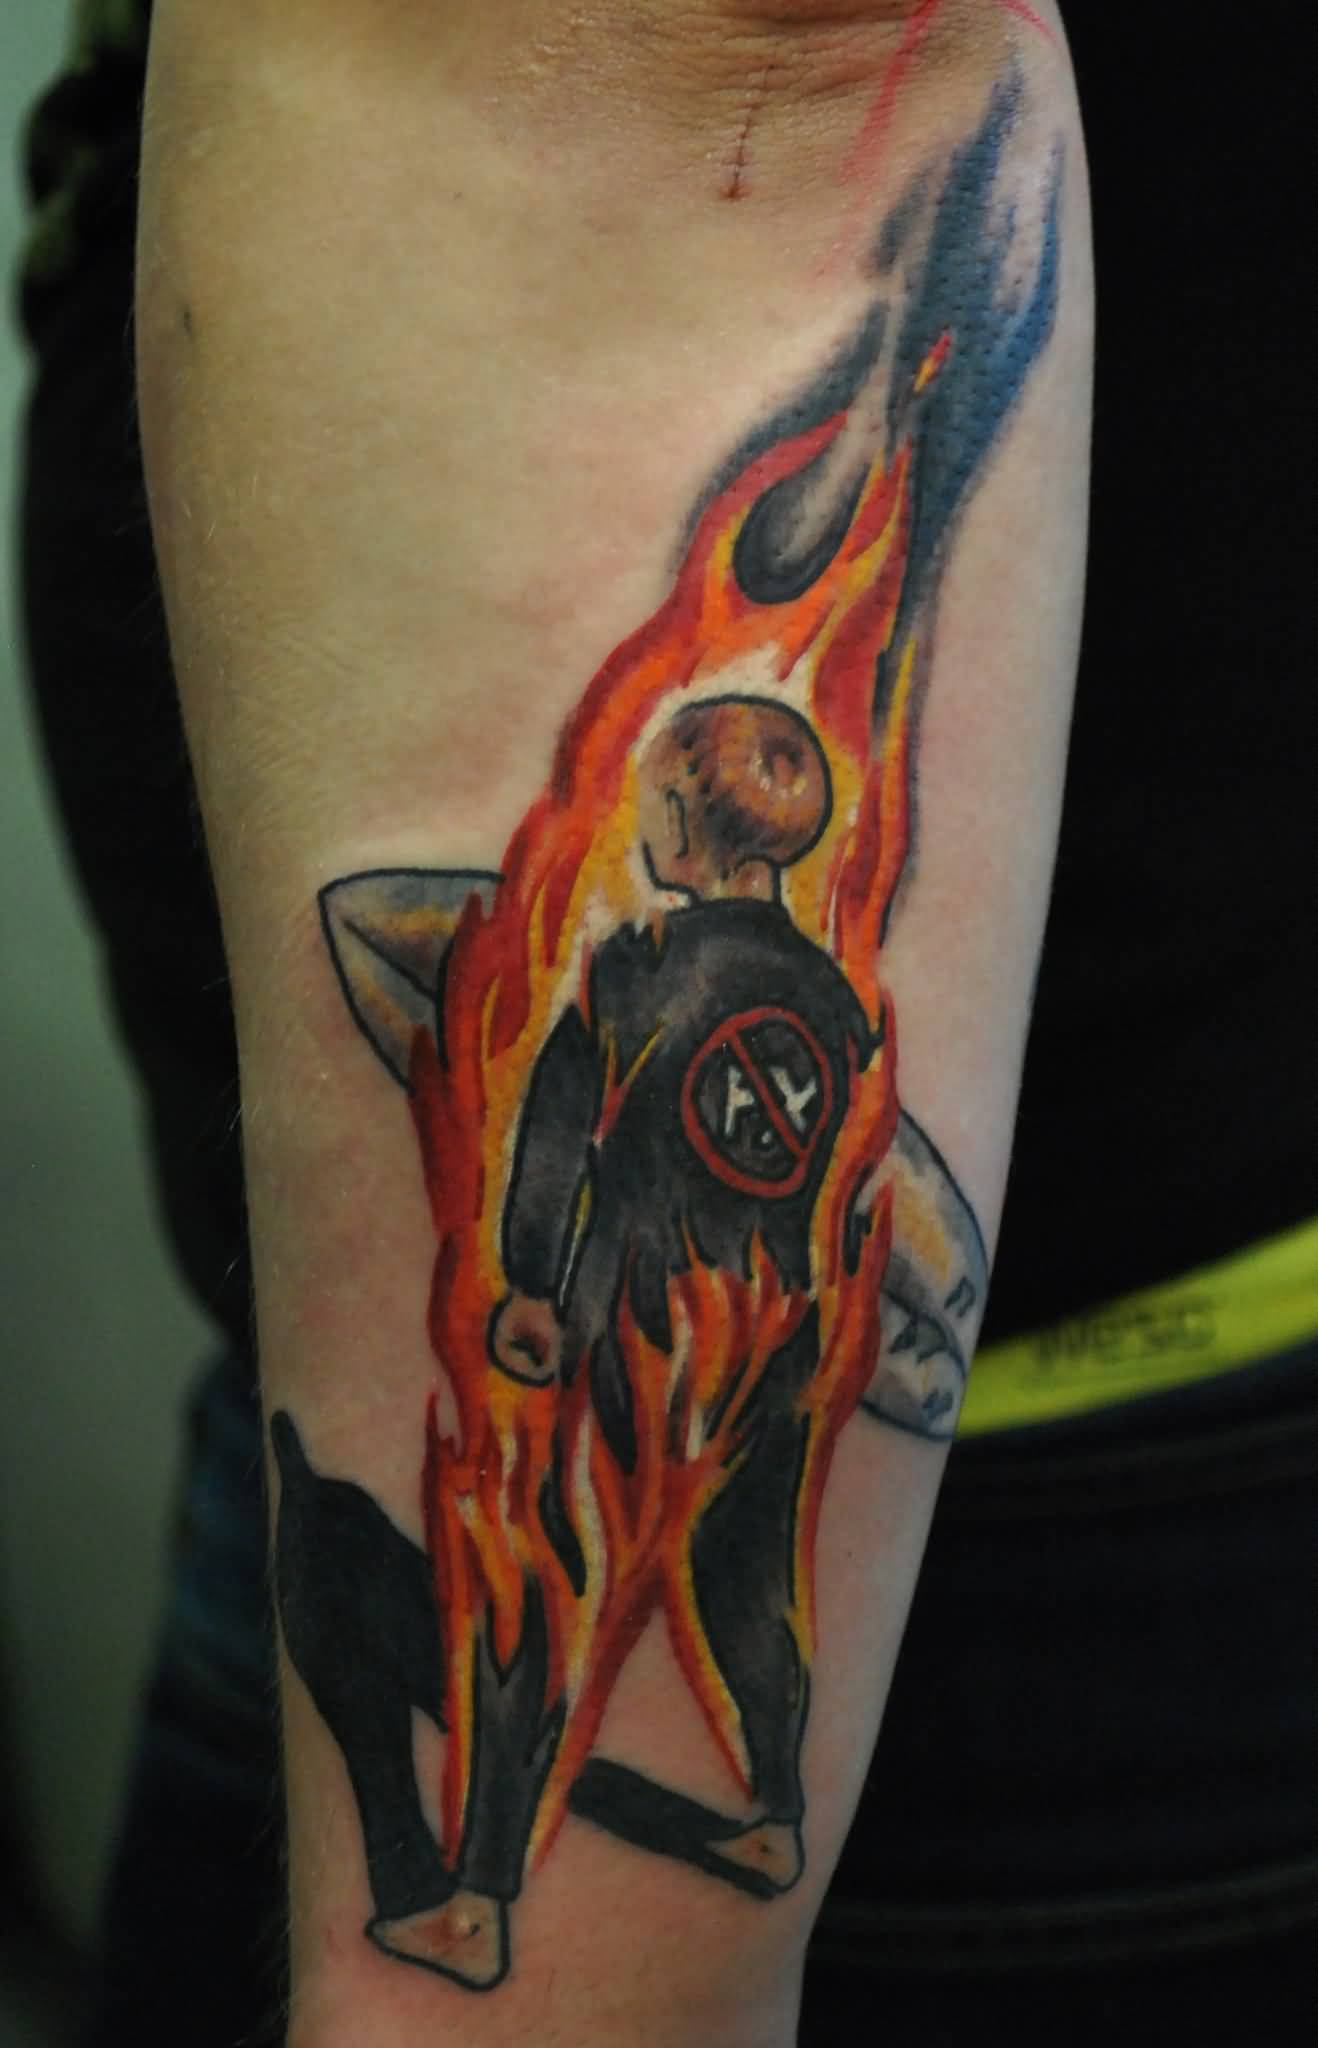 Flaming Punk Men Tattoo Design For Forearm Sleeve